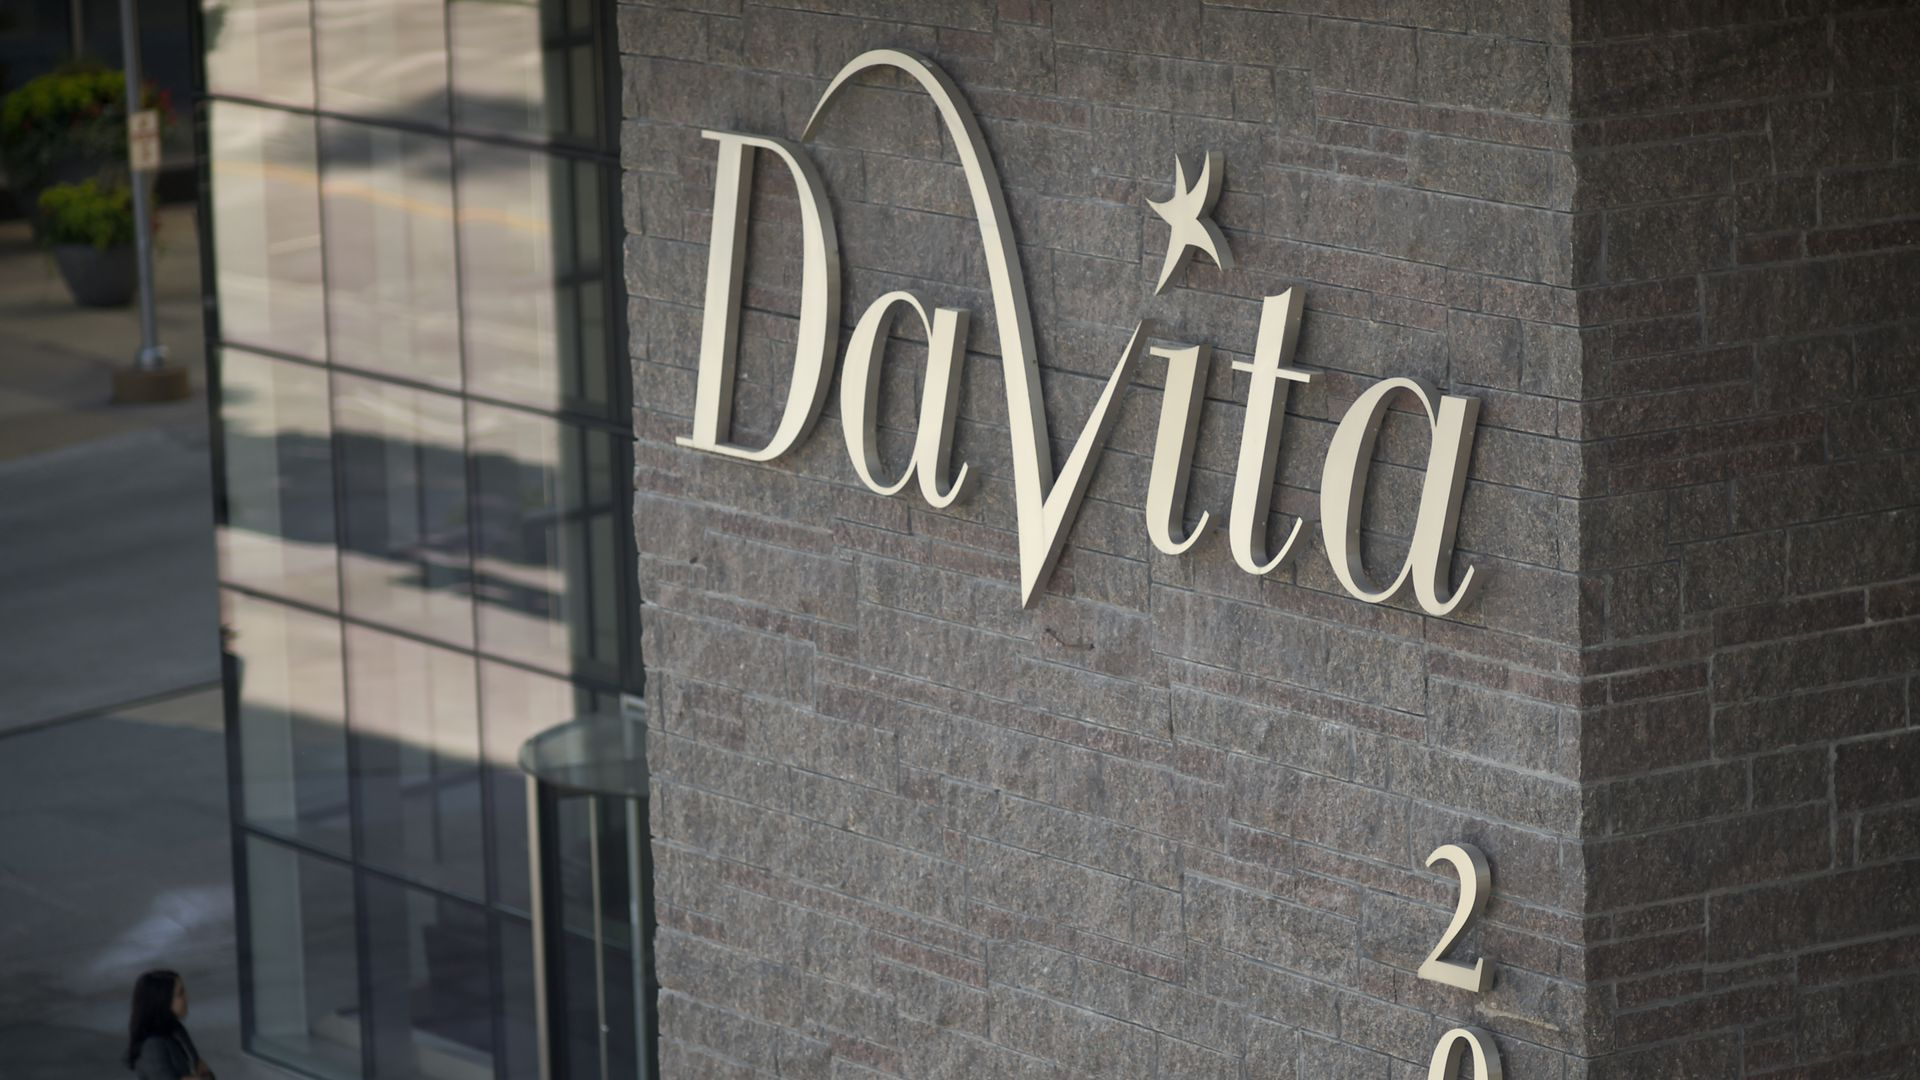 DaVita's headquarters building in Colorado.